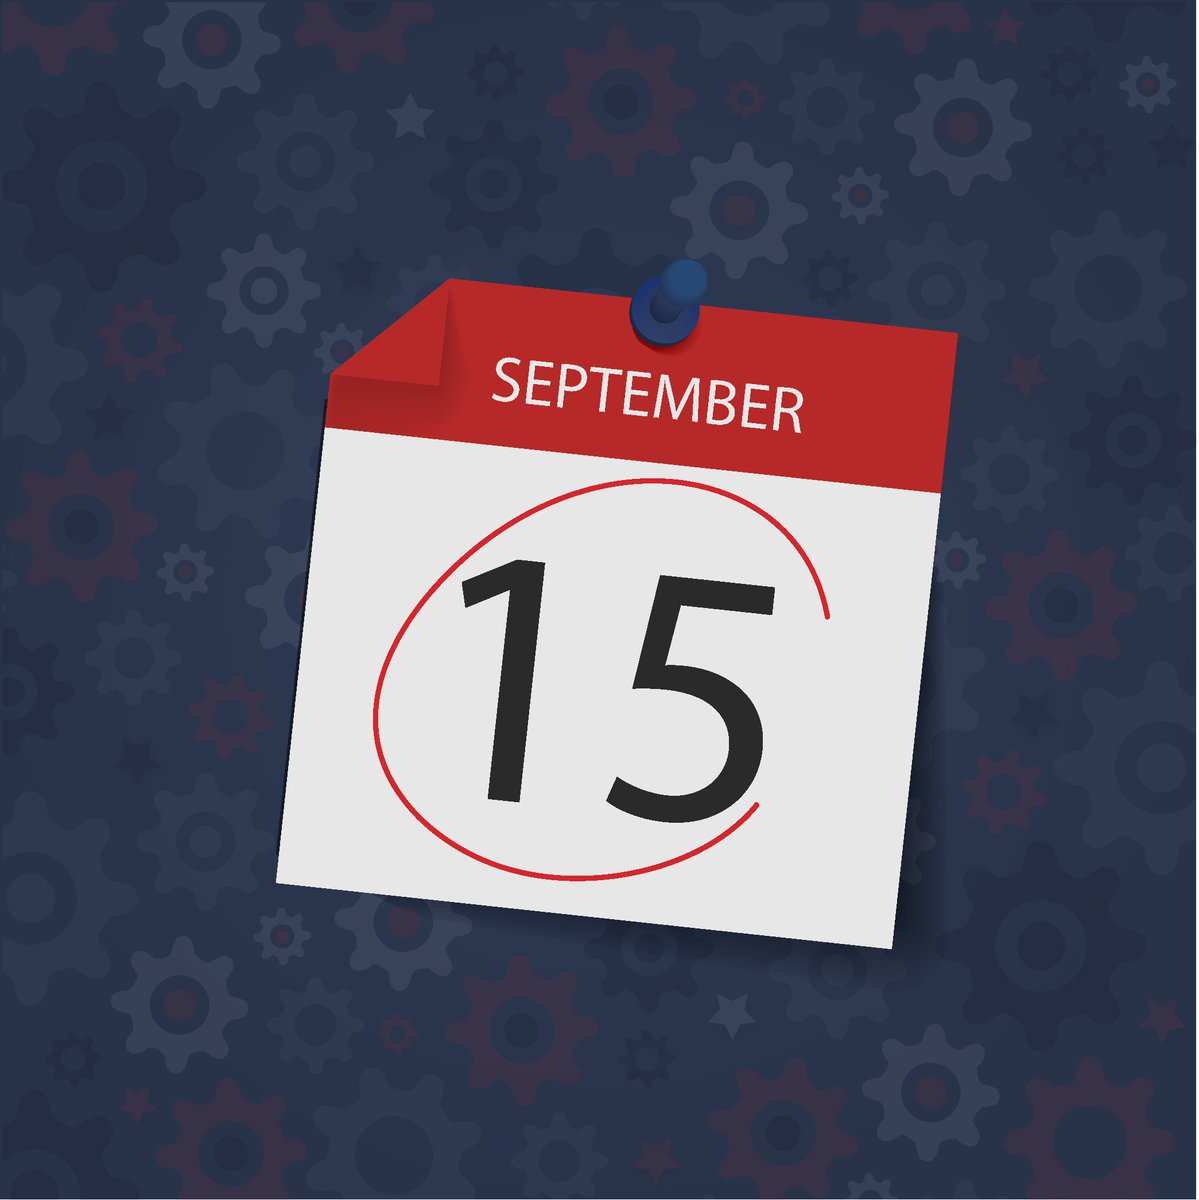 The deadline for Harrison County students to register for the West Virginia Virtual School is Tuesday, Sept. 15th.    As a reminder, after September 15th, HC students that have enrolled in WVVS courses are committed to staying in their WVVS courses for the entire first semester.